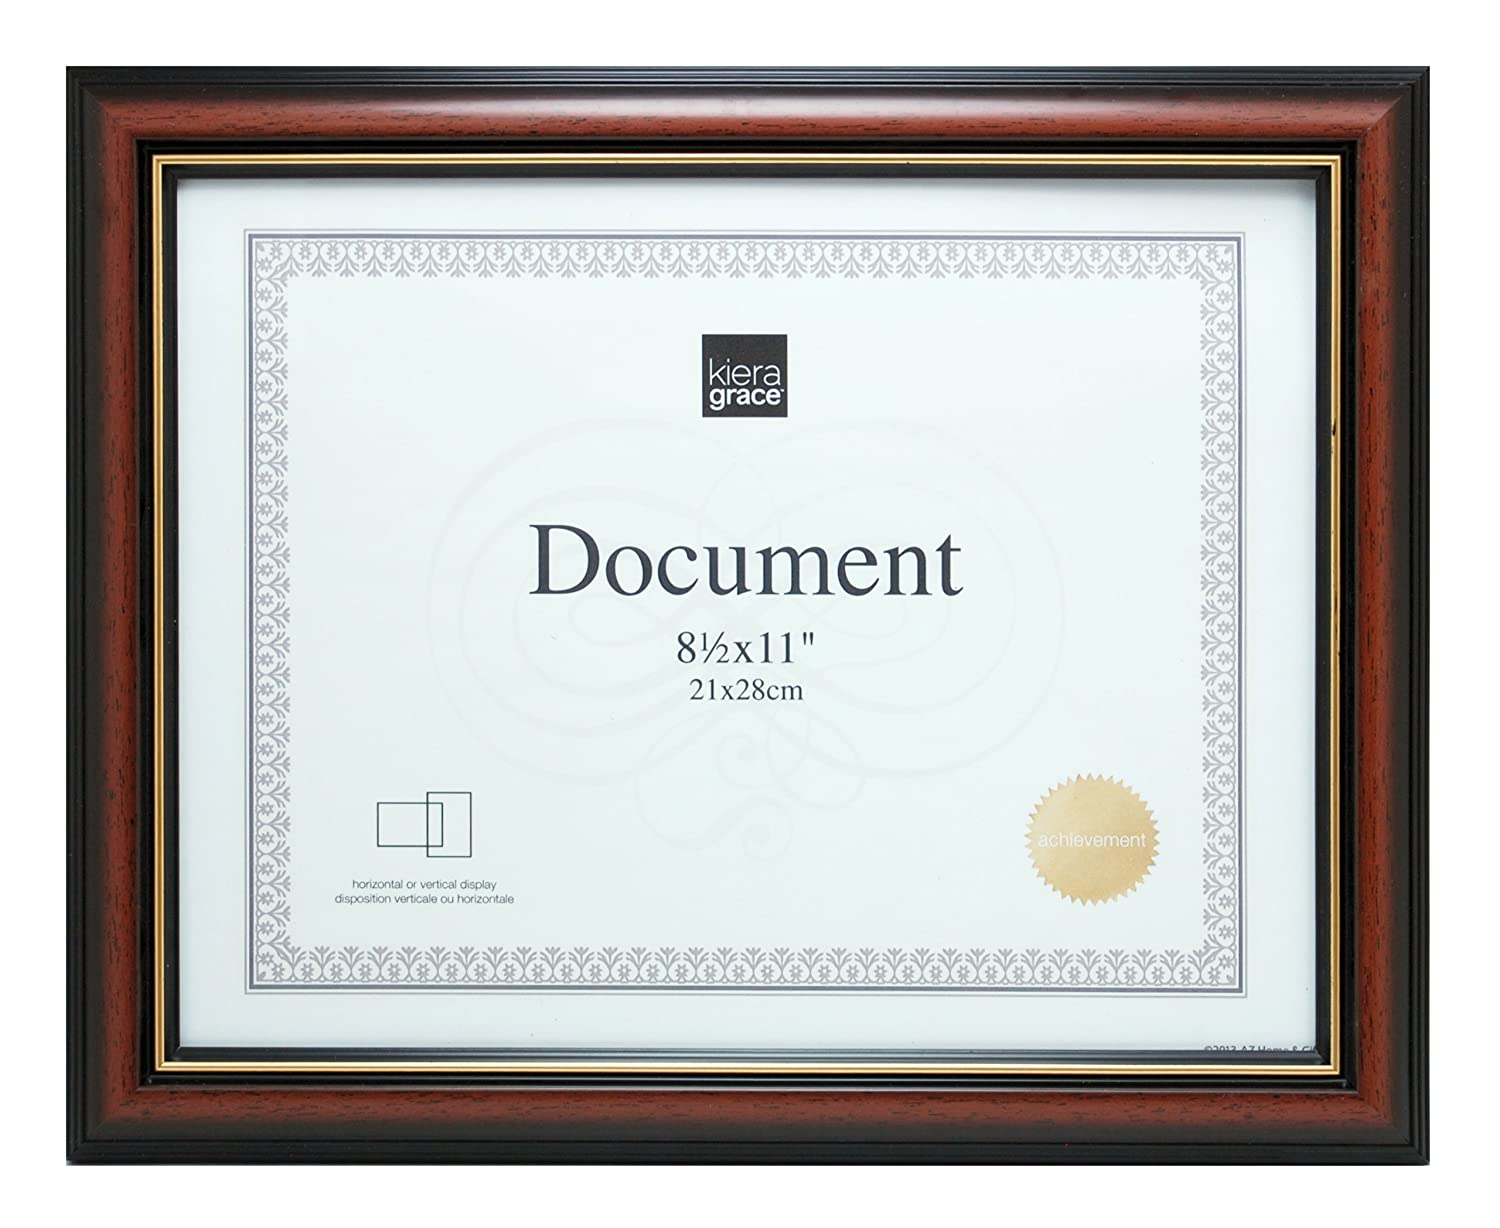 Kiera Grace Kylie Document Frame, 8.5 by 11 Inch, Brown with Gold Lining PH43830-0